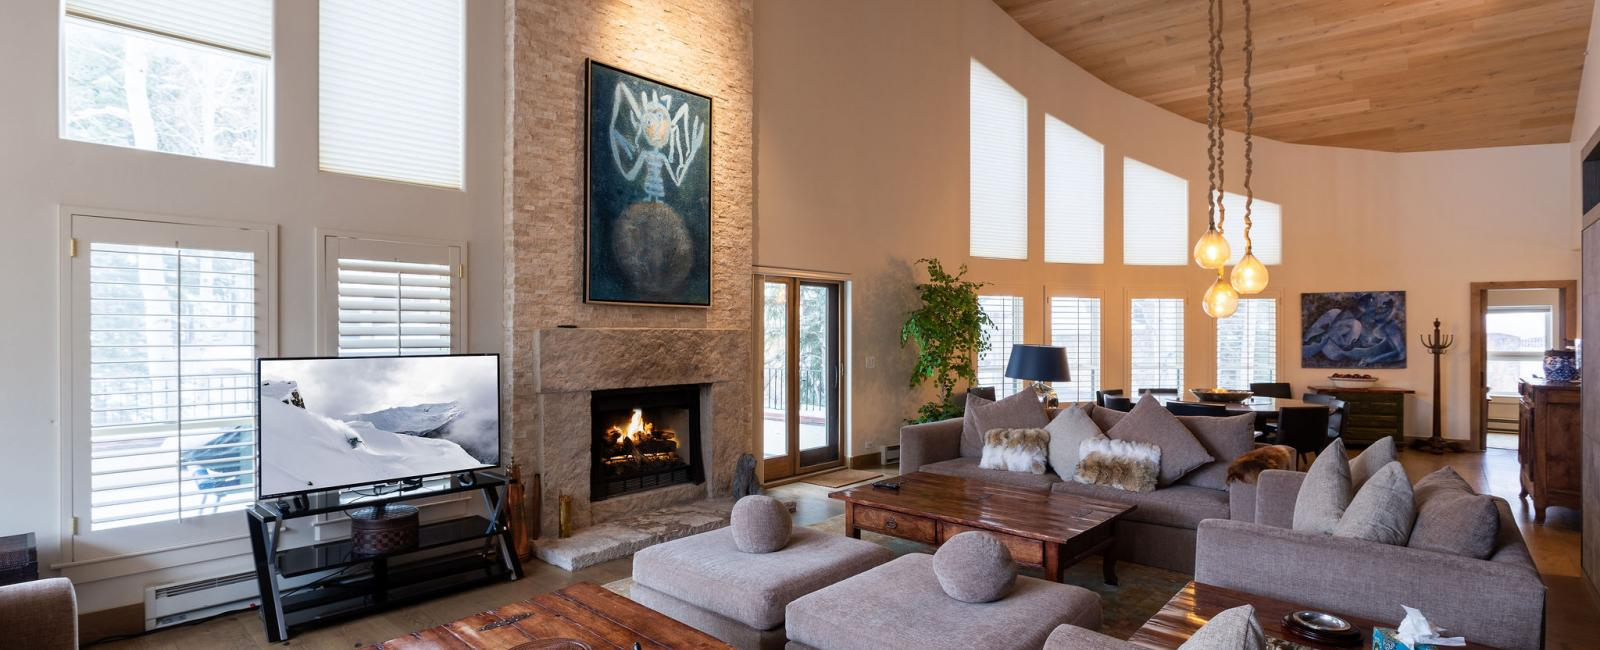 Vail Realty - Vacation Rentals and Real Estate in the Vail